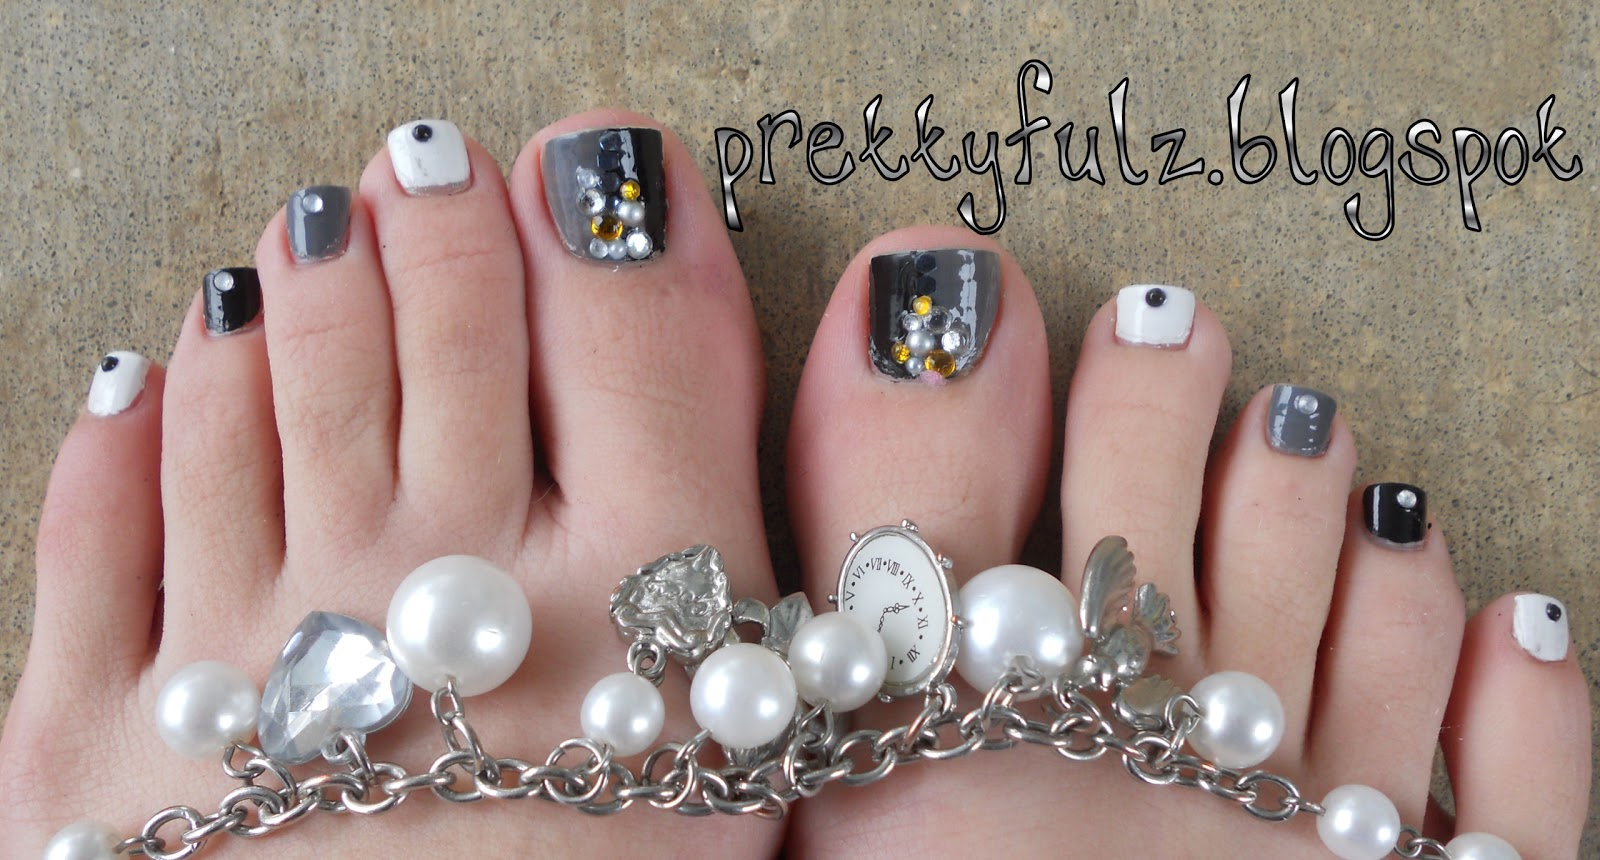 Prettyfulz pedicure nail art designs black white pedicure pedicure nail art designs black white pedicure prinsesfo Image collections